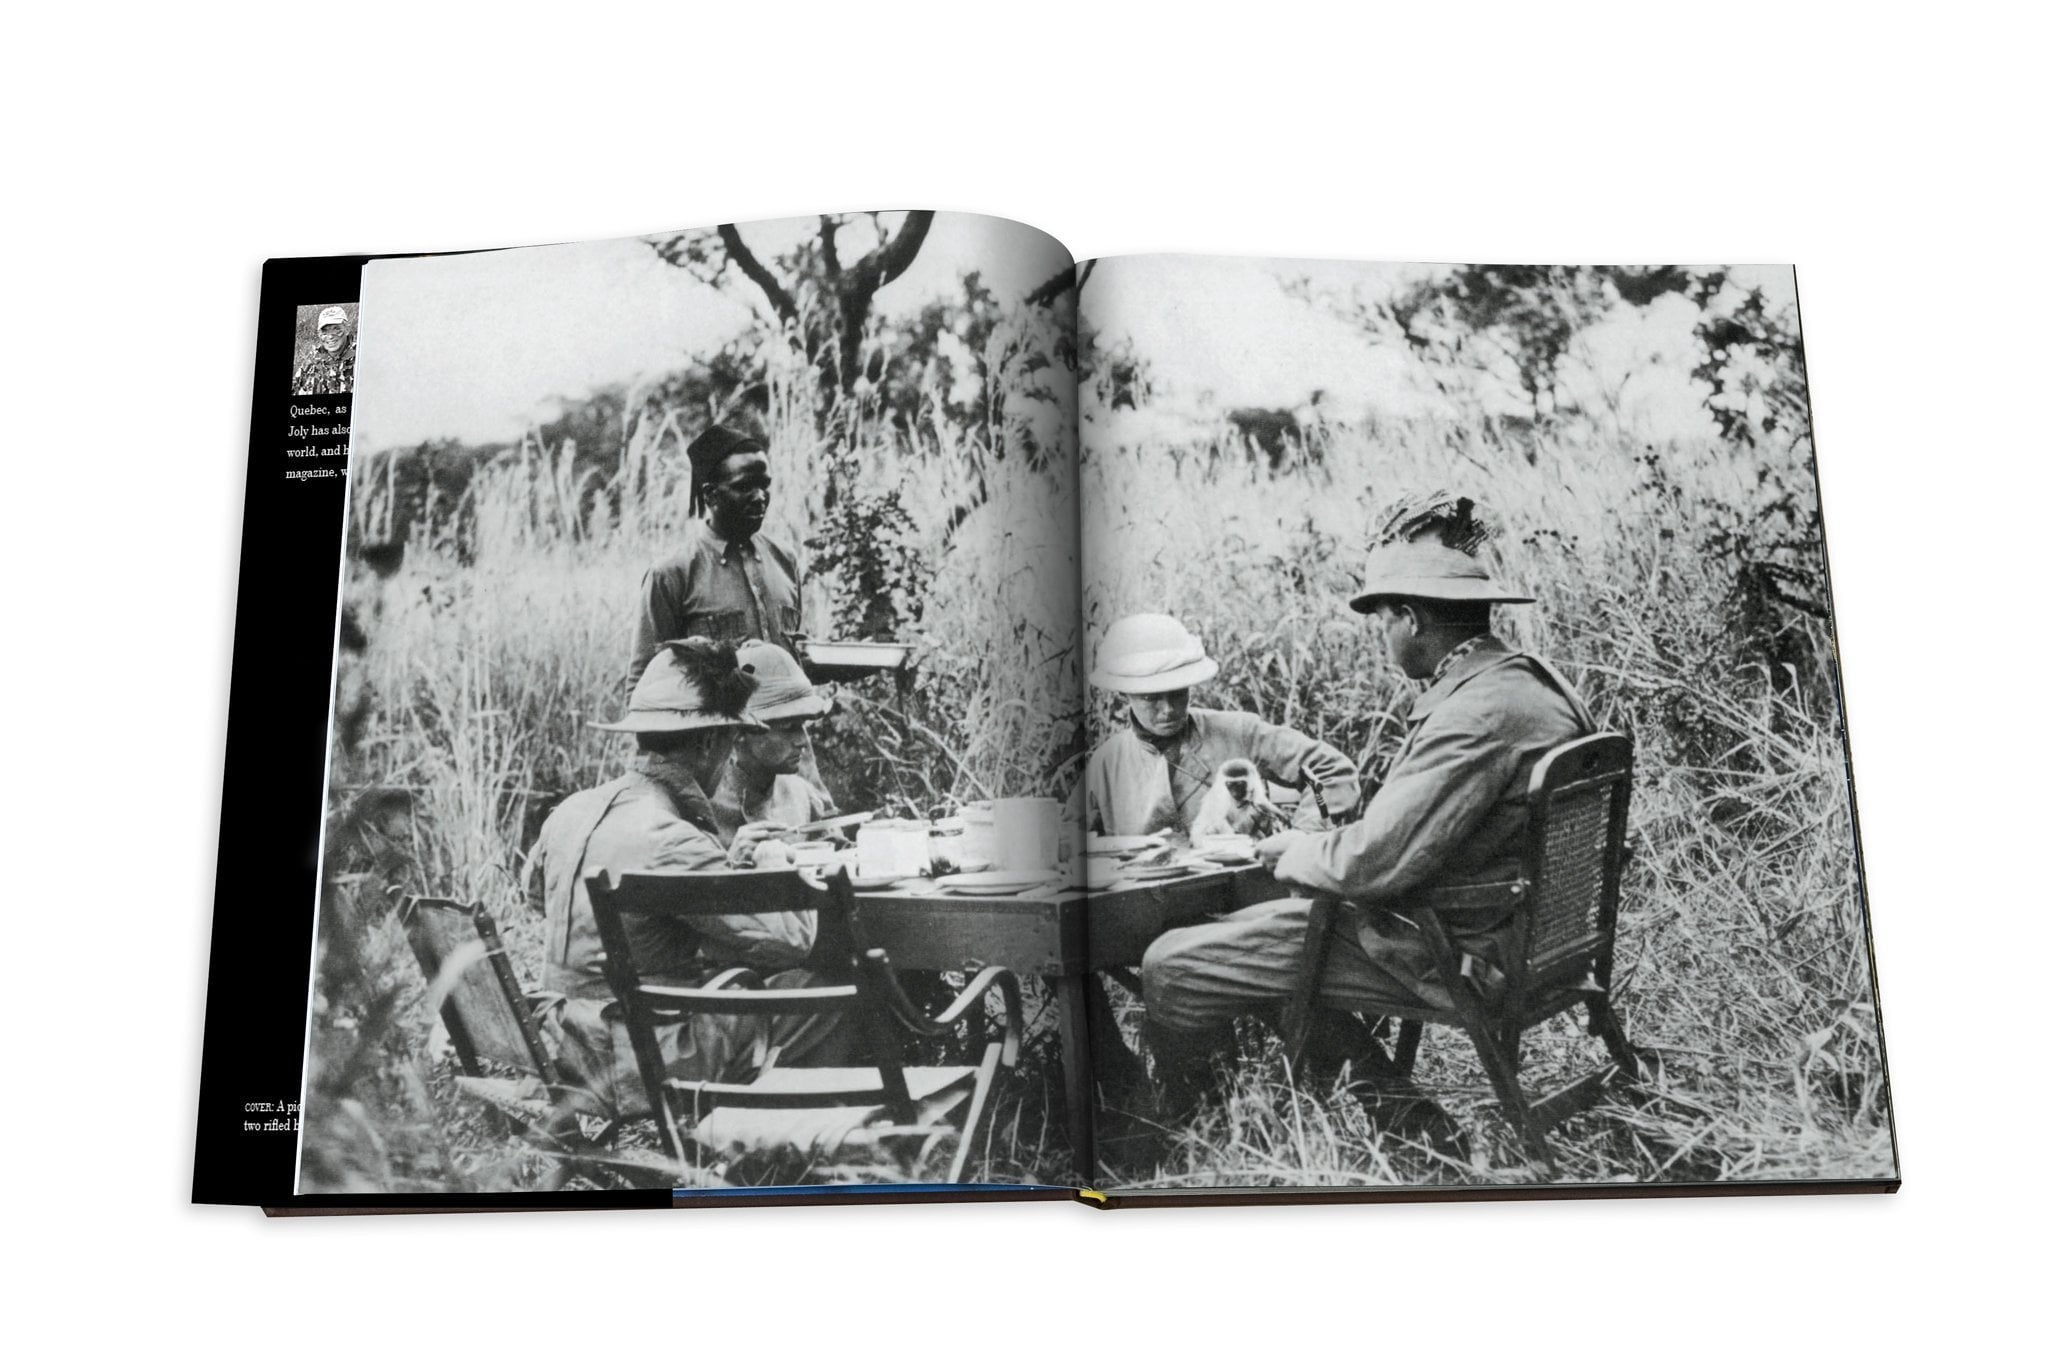 Hunting, Legendary Rifles - Assouline